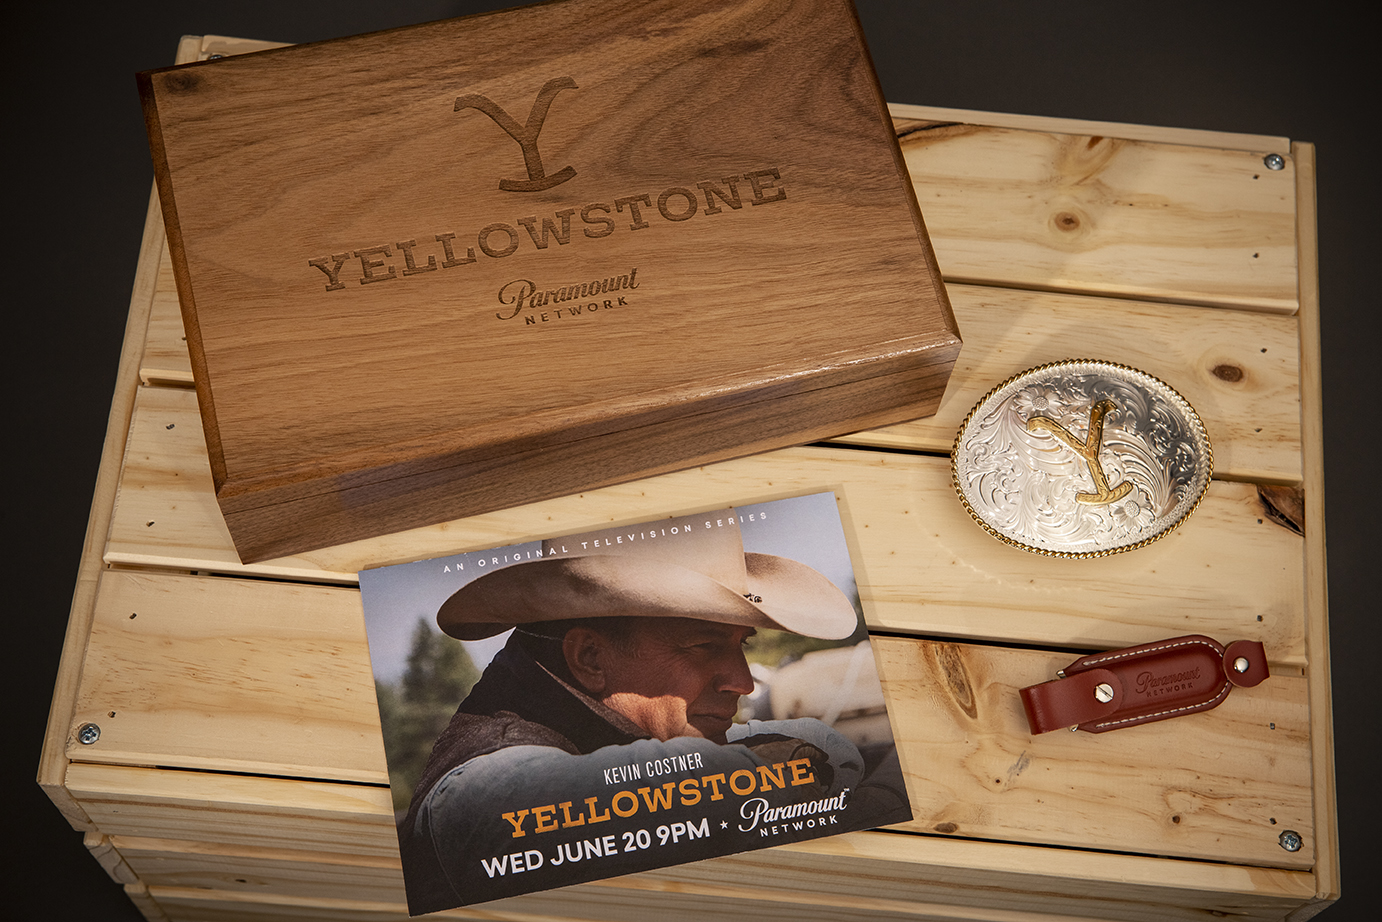 Yellowstone press kit